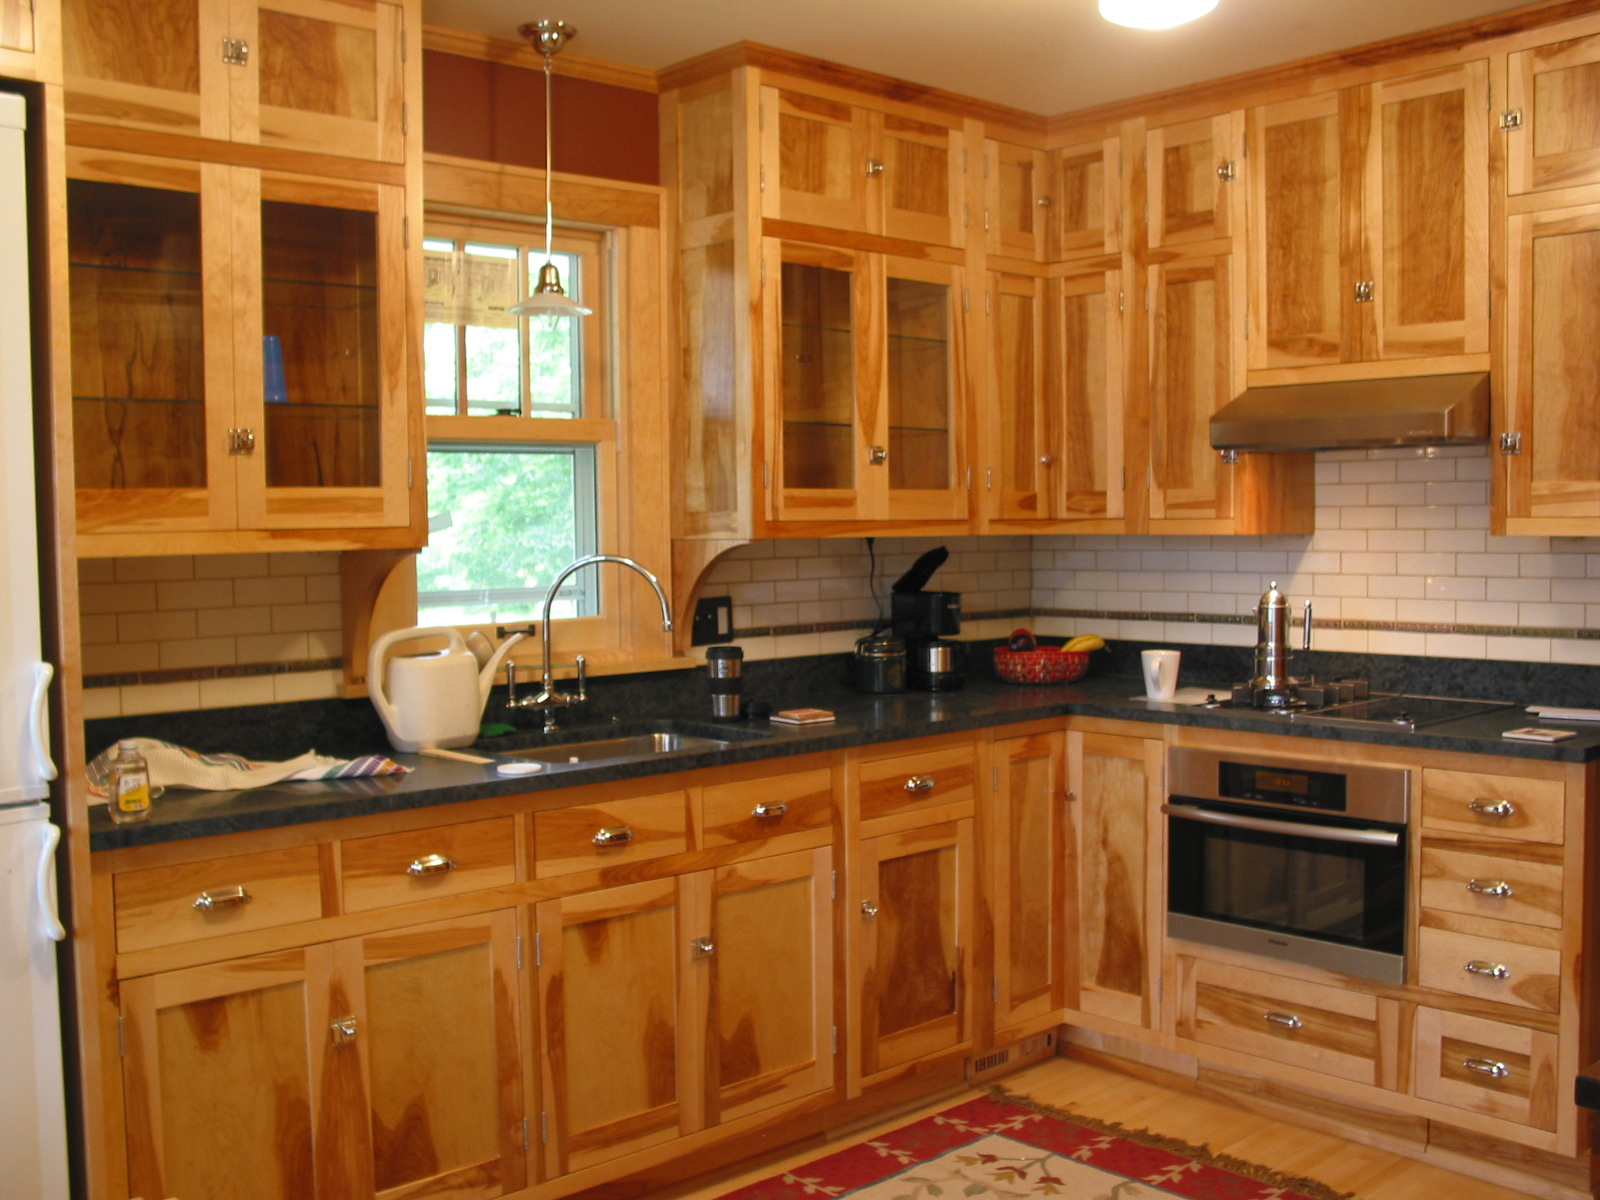 Whole-Builders-Kitchen-Remodel-W08-0121